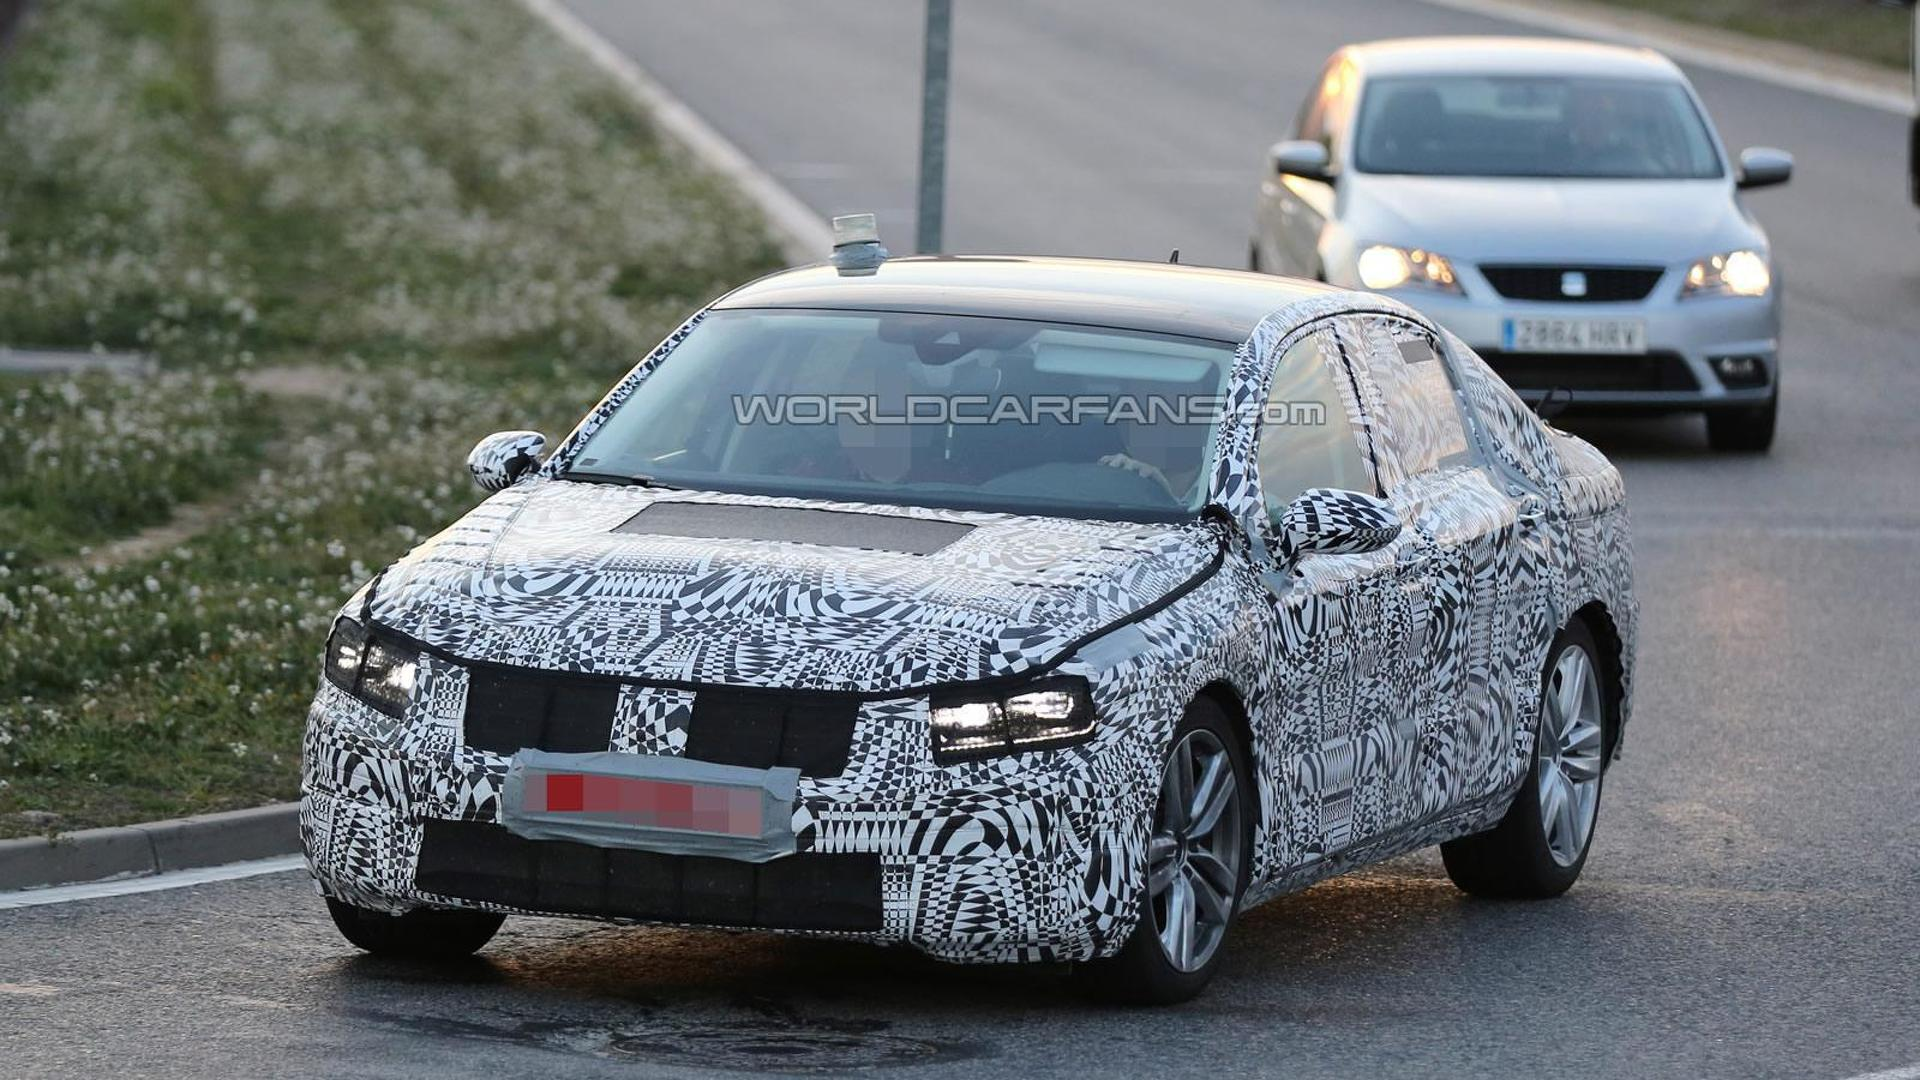 2015 Volkswagen Passat spied testing in southern Europe showing new details